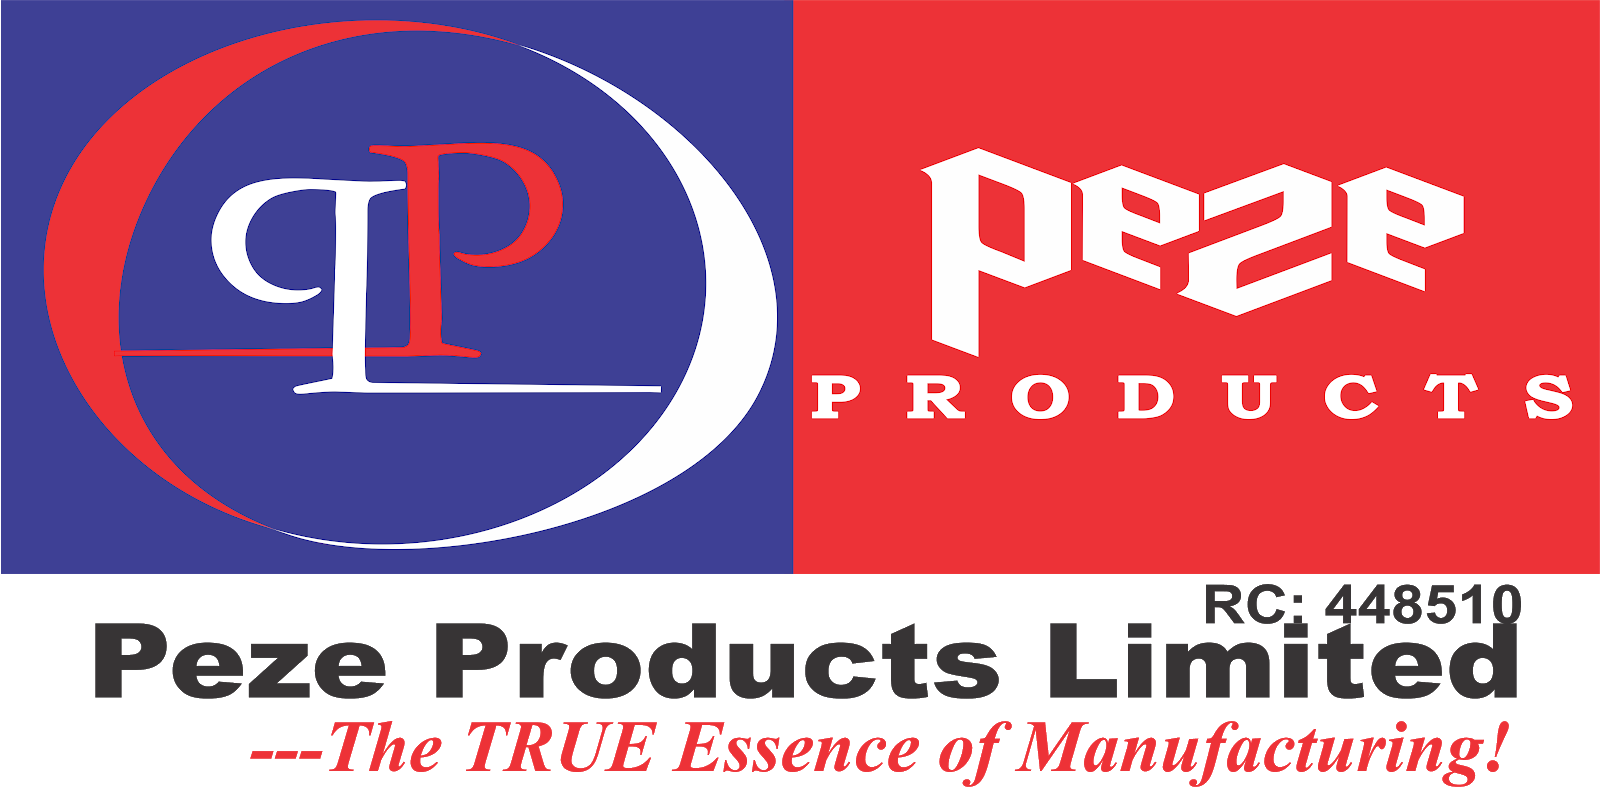 PEZE PRODUCTS LIMITED